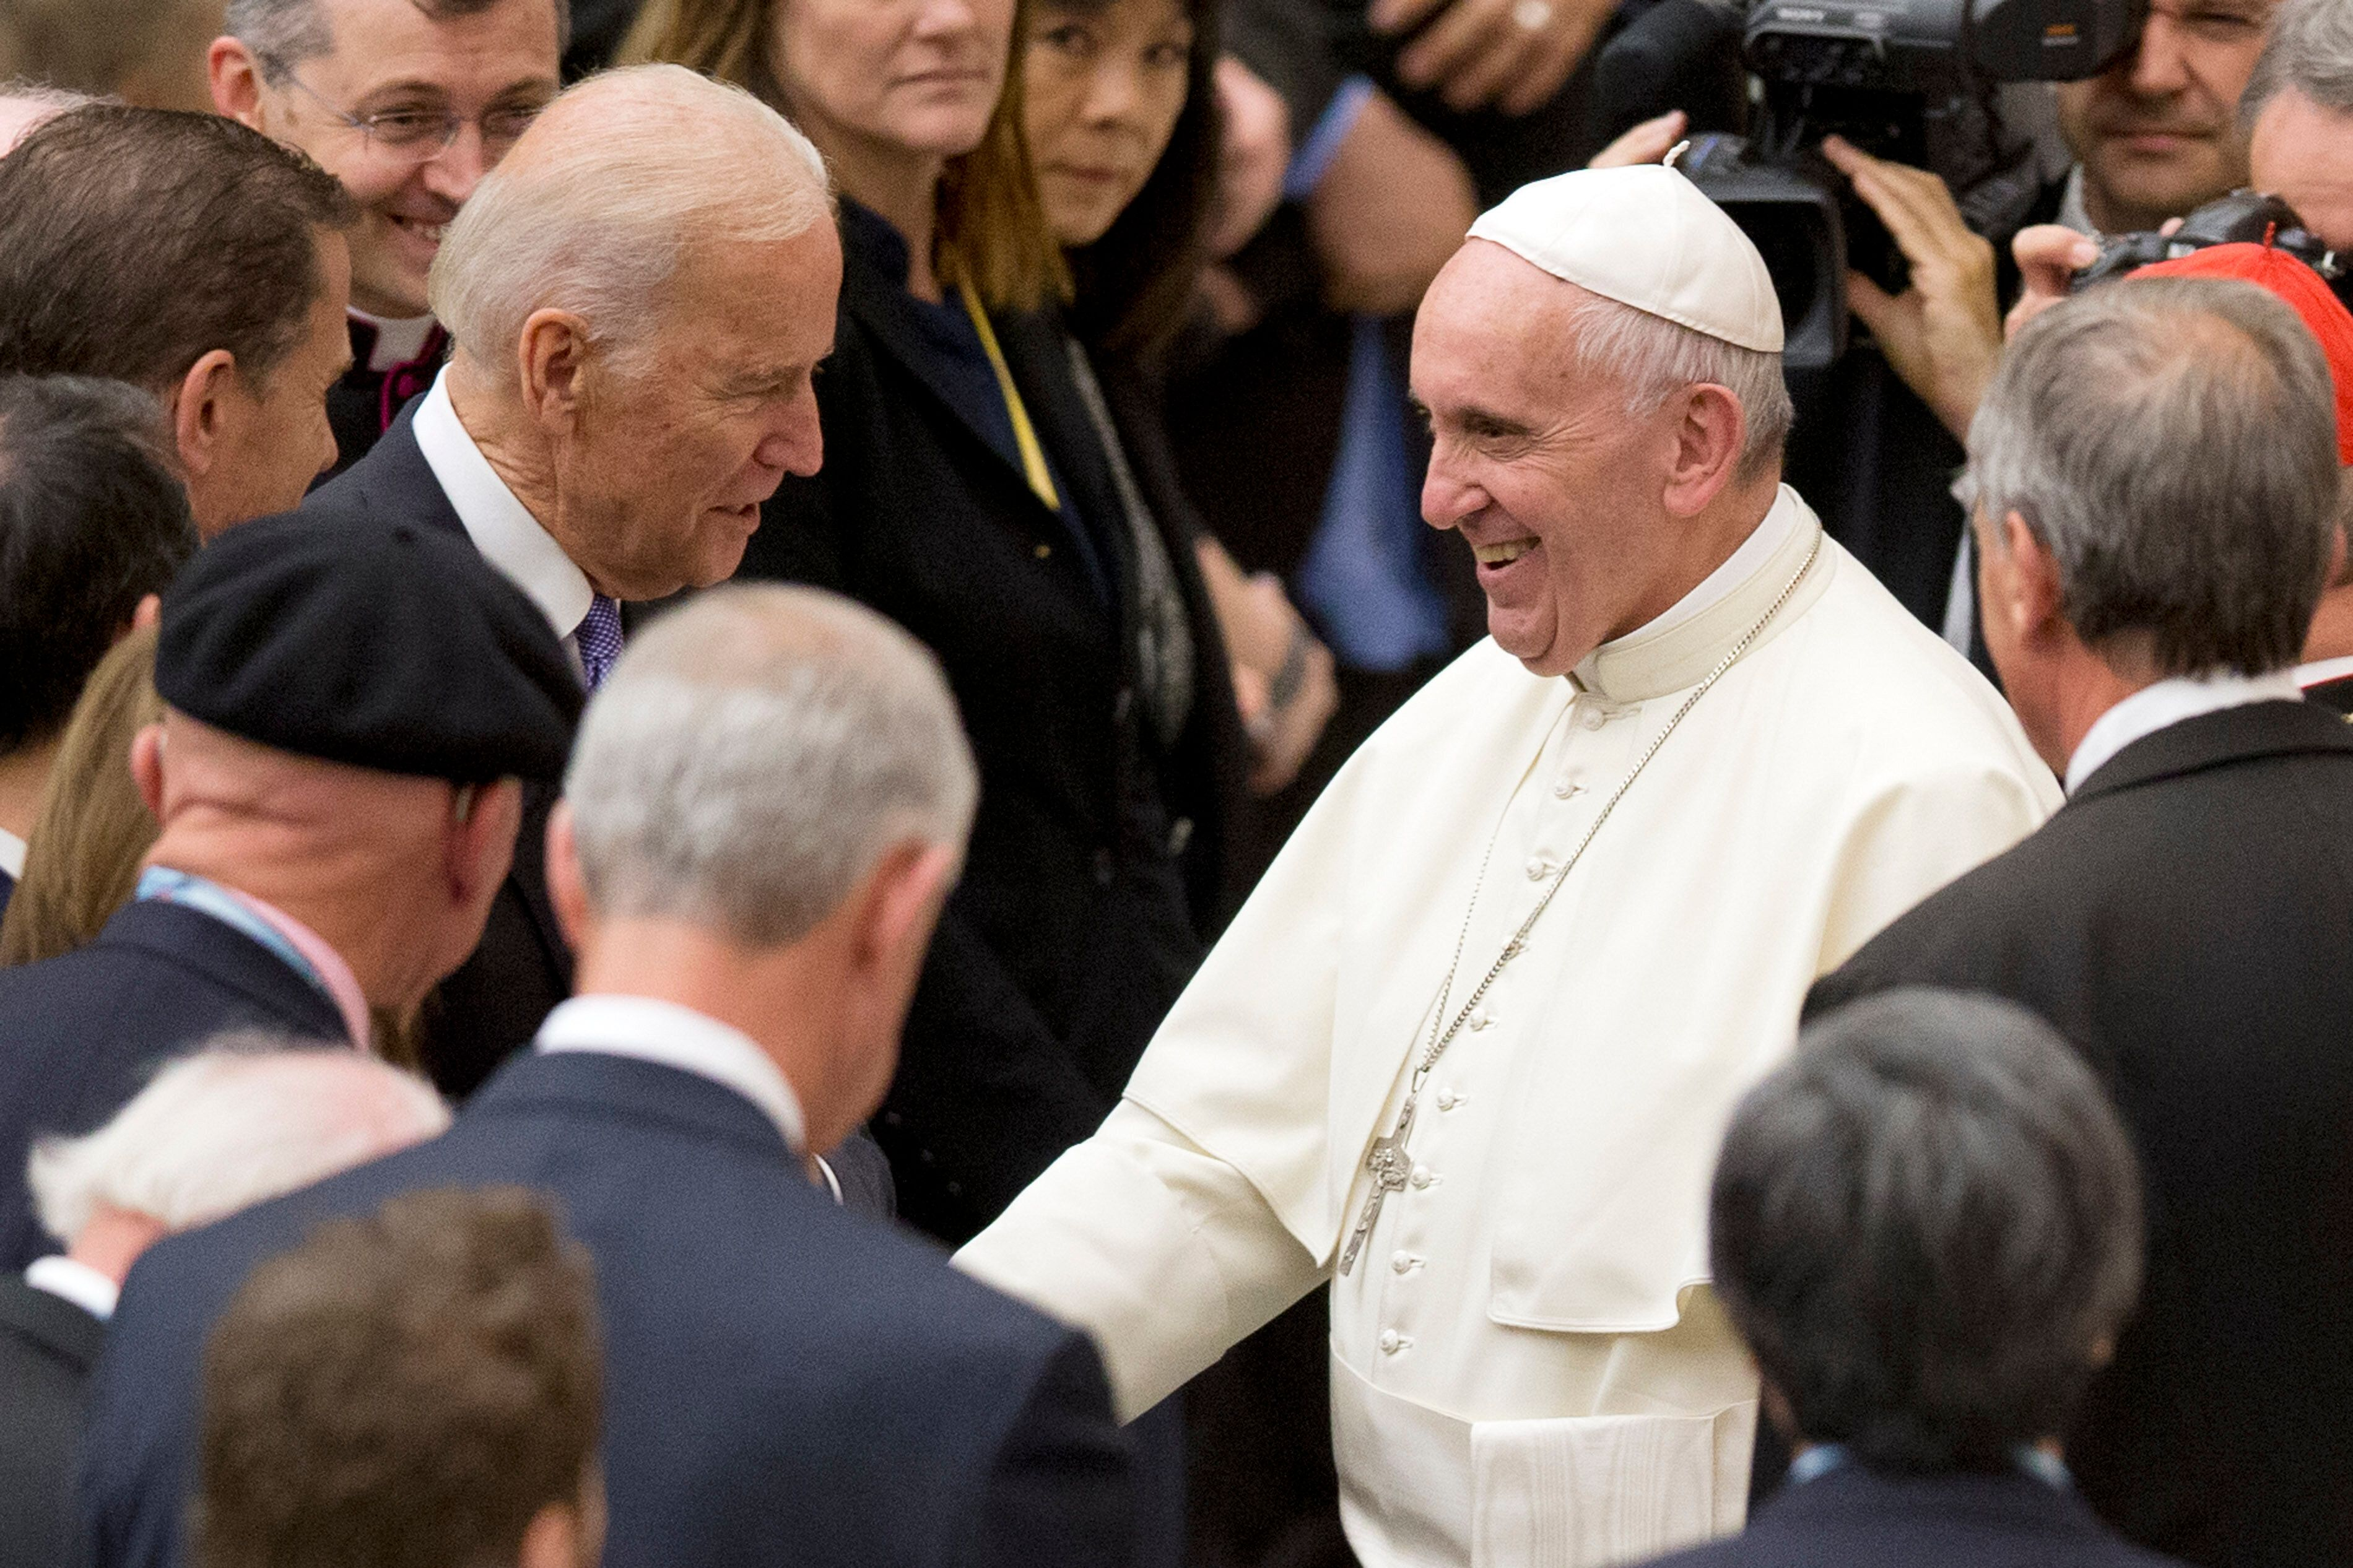 Then-Vice President Joe Biden shakes hands with Pope Francis during a conference in April 2016 on cancer research at the